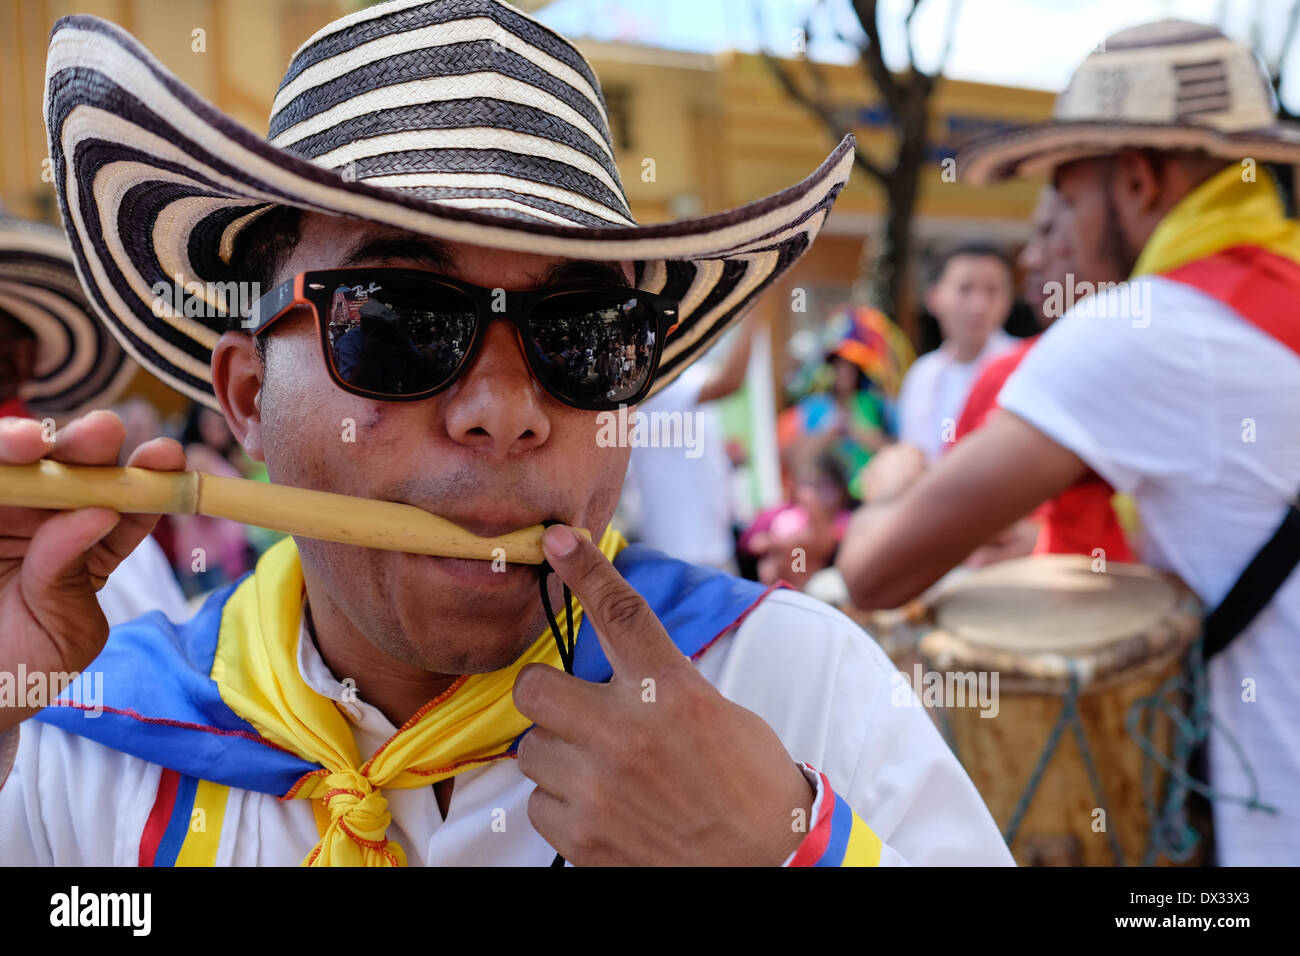 MIAMI - MARCH 9, 2014: Portrait of colombian street performer during the 37th Calle Ocho festival, an annual event - Stock Image